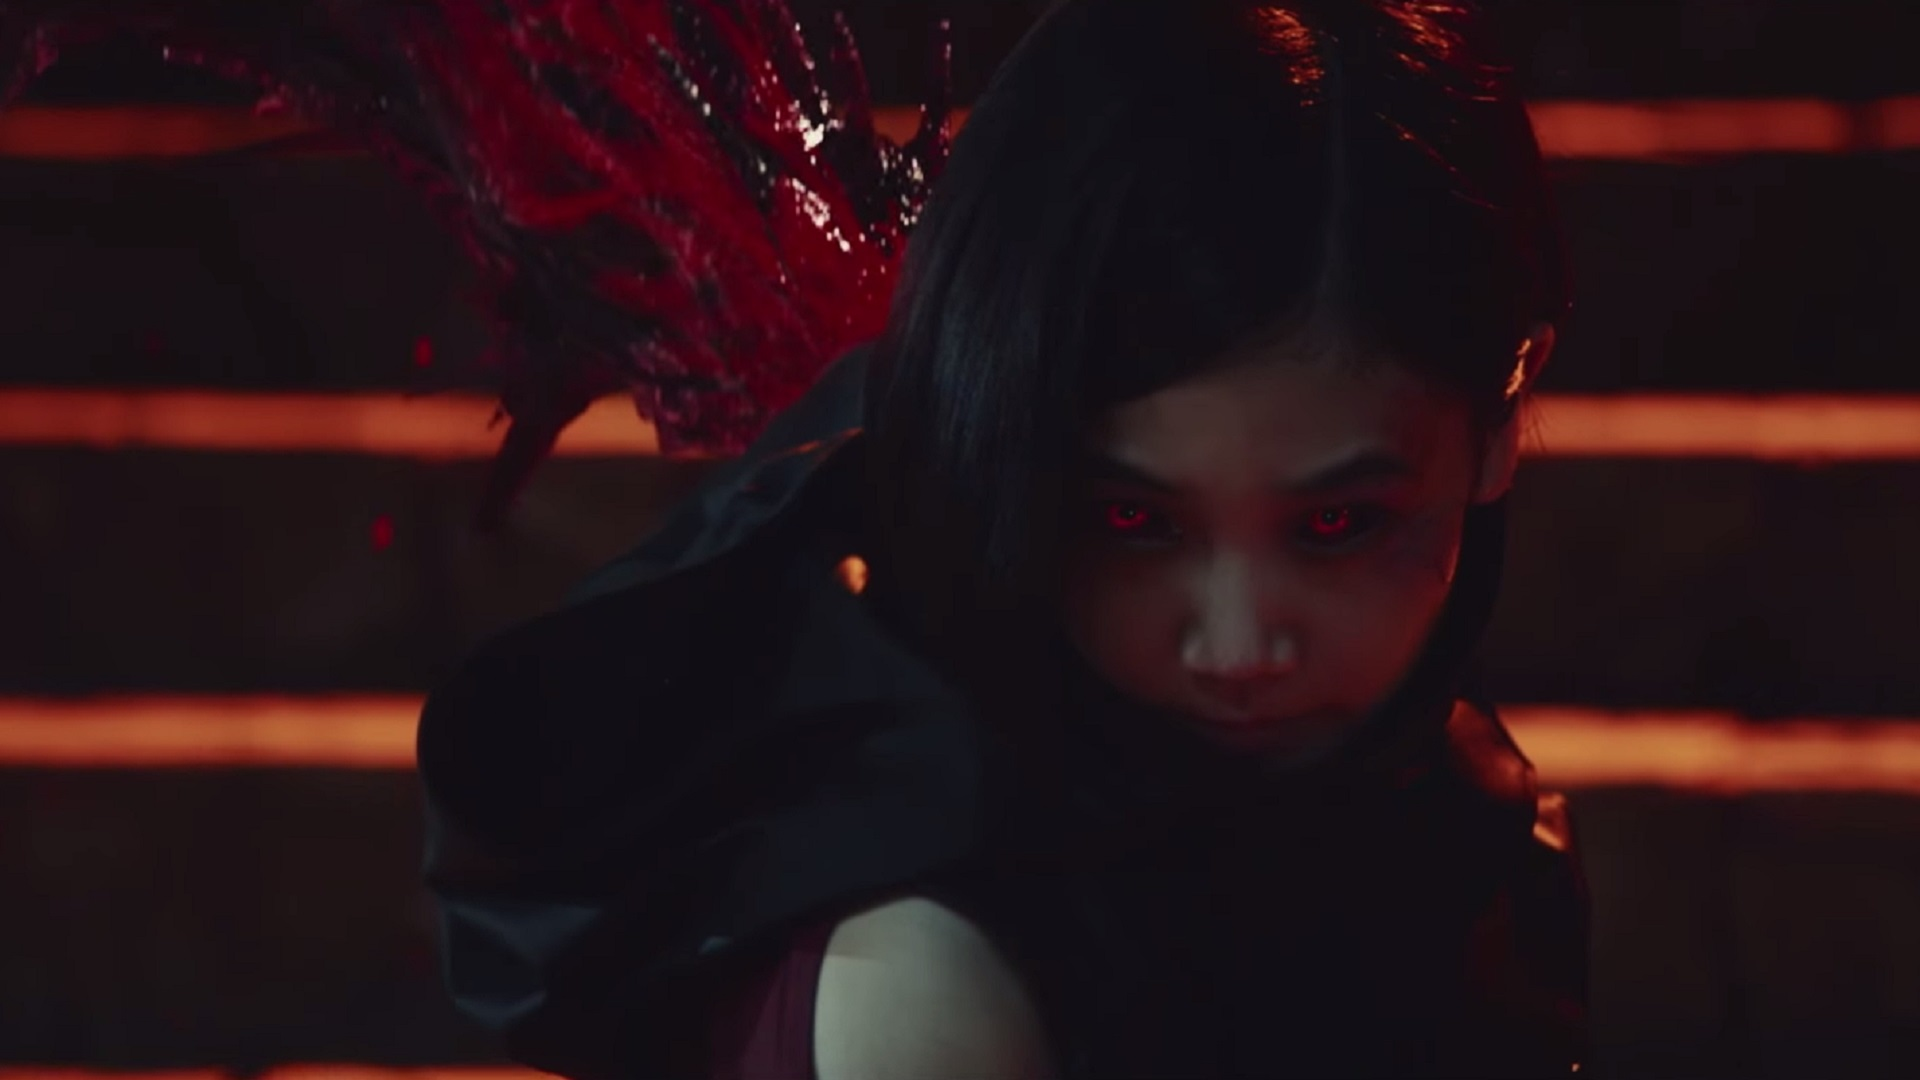 the-english-teaser-trailer-for-the-live-action-tokyo-ghoul-movie-has-arrived-social.jpg